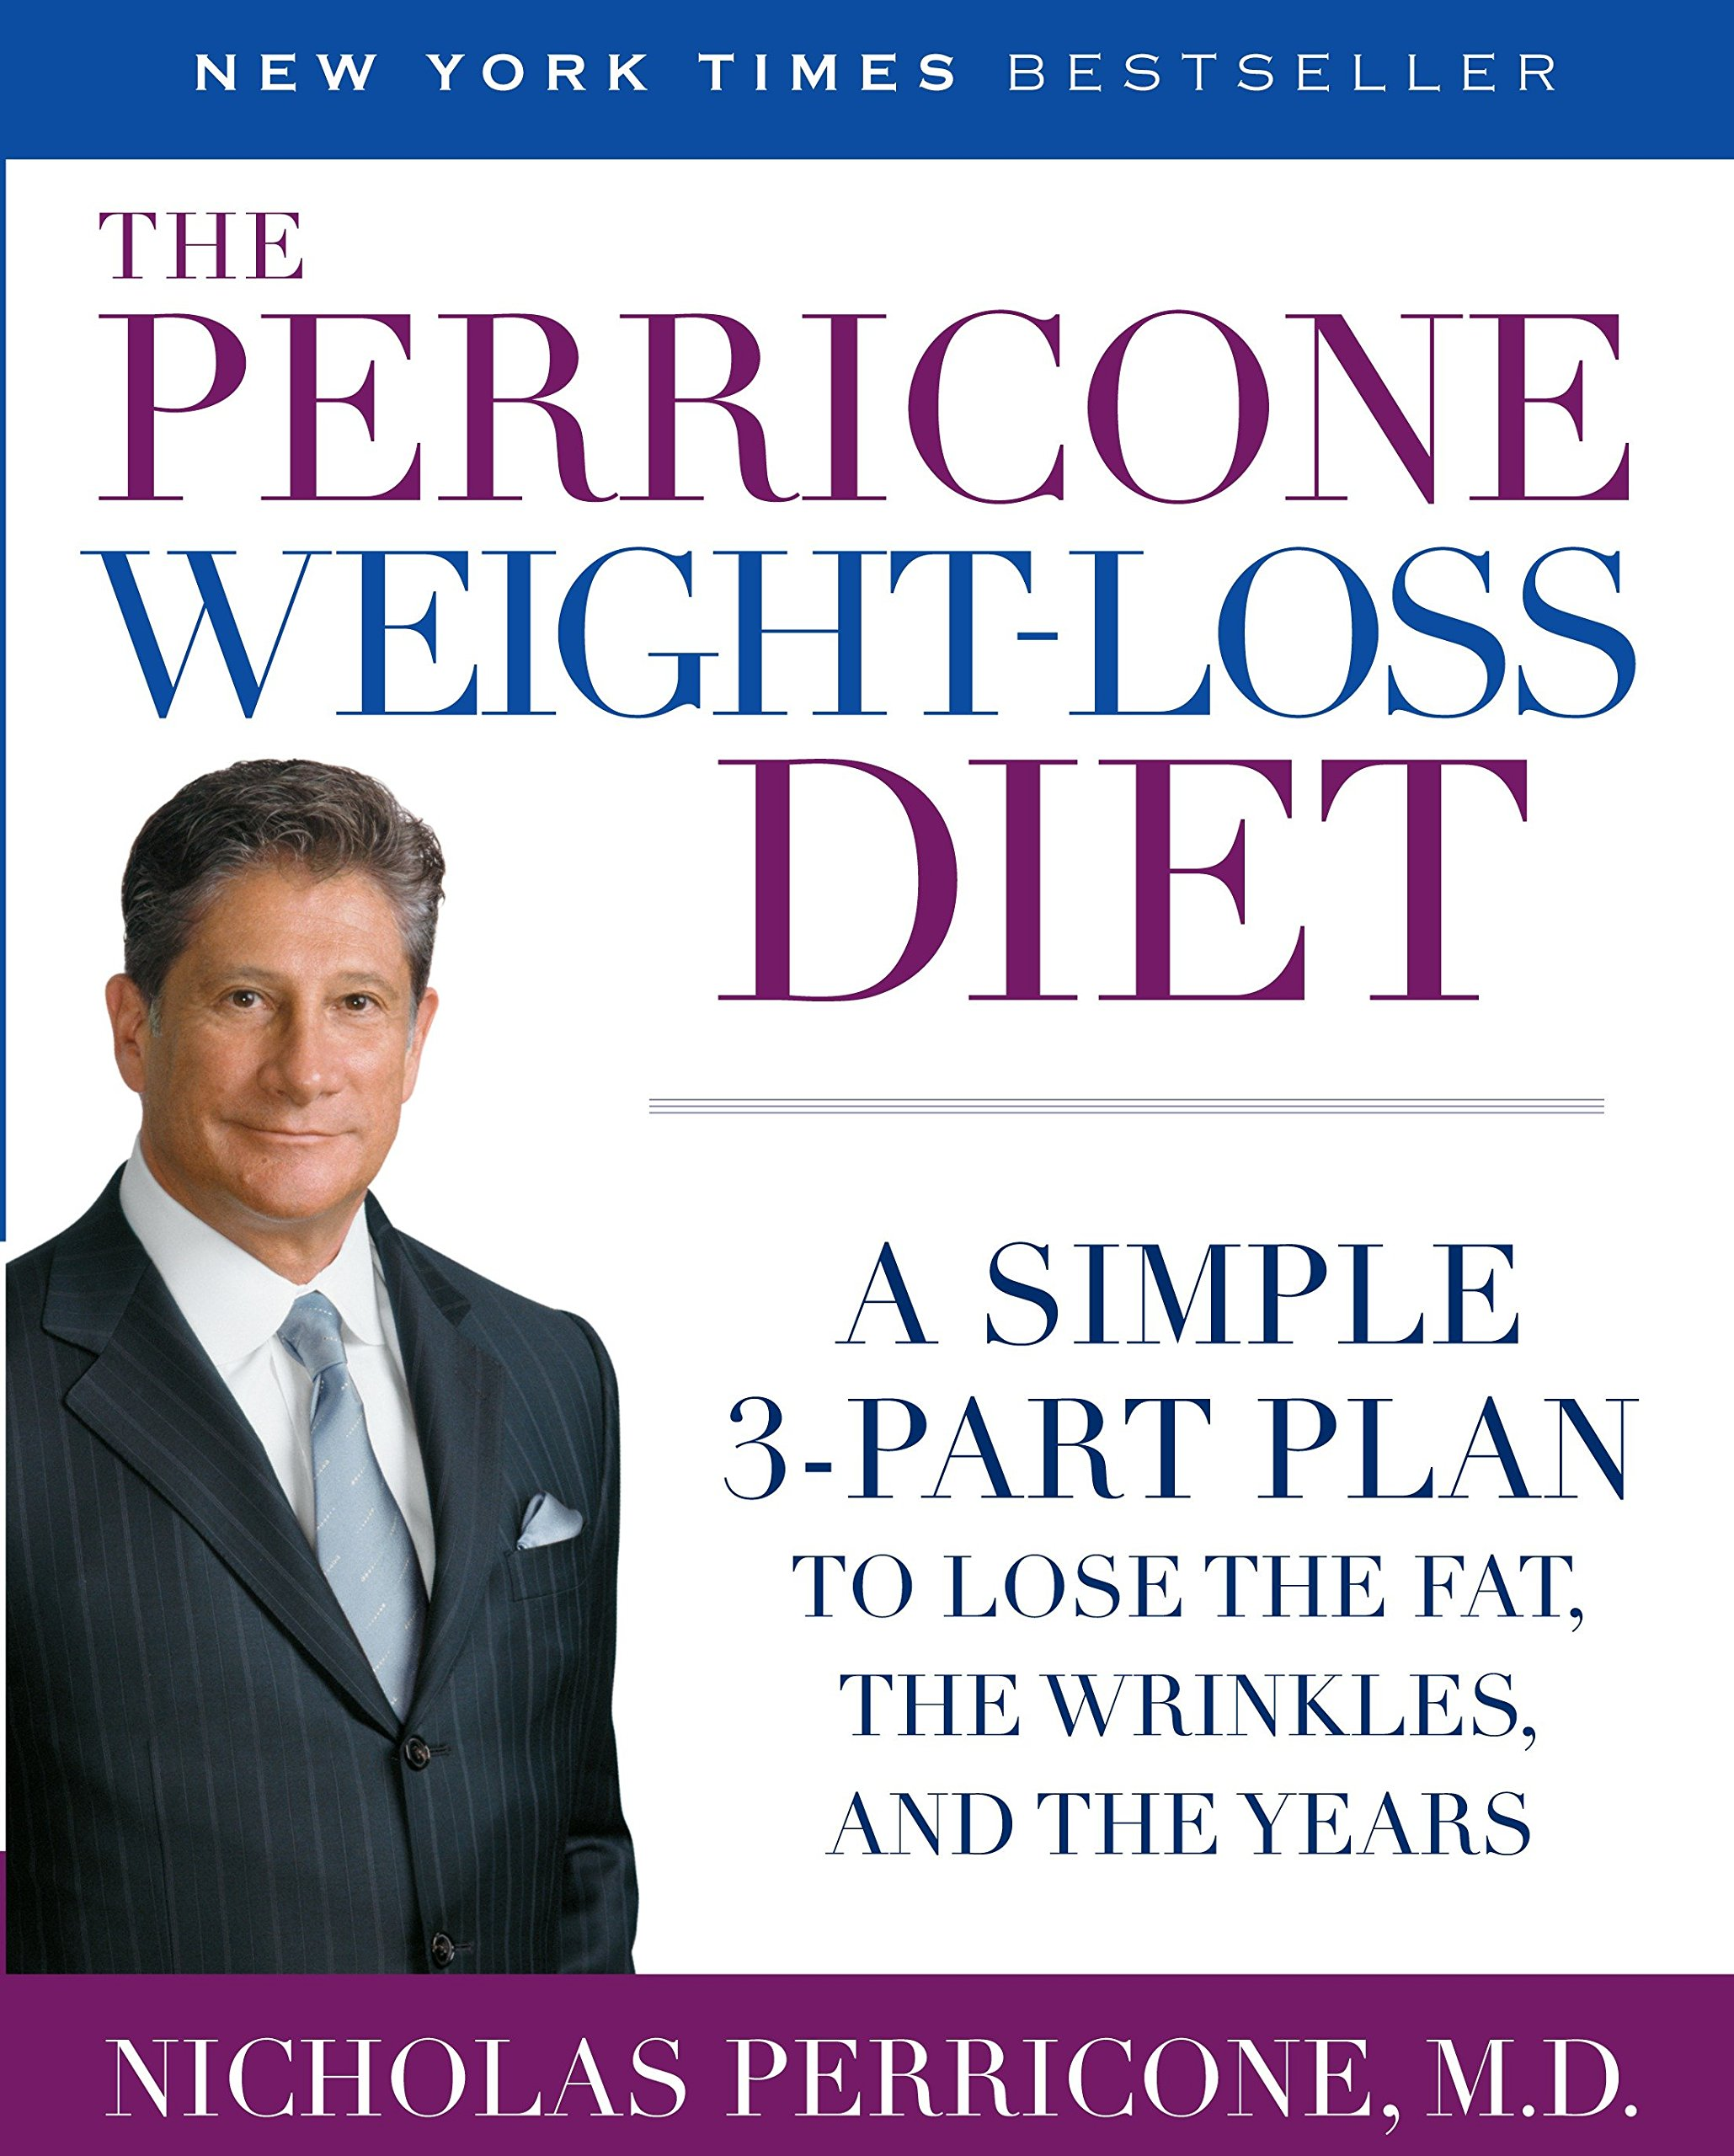 The Perricone Weight Loss Diet A Simple 3 Part Plan To Lose The Fat